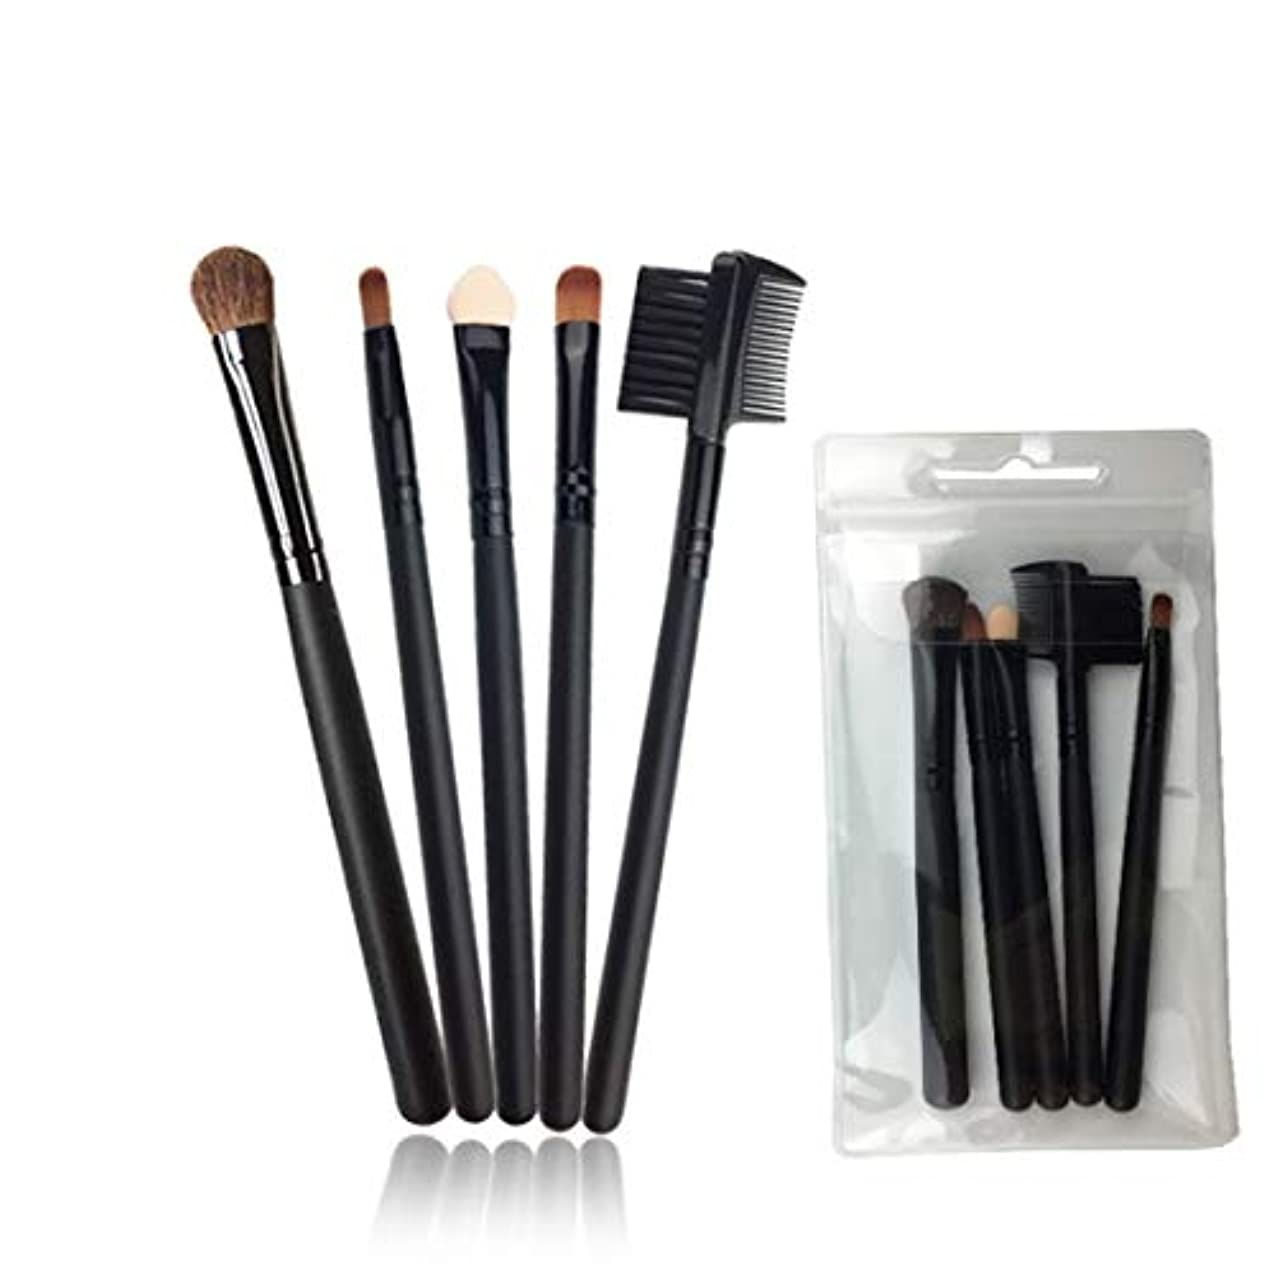 Makeup brushes 黒、旅行ポータブルミニスカートアイメイクメイクツールメイクブラシセット用5メイクブラシ suits (Color : Black)